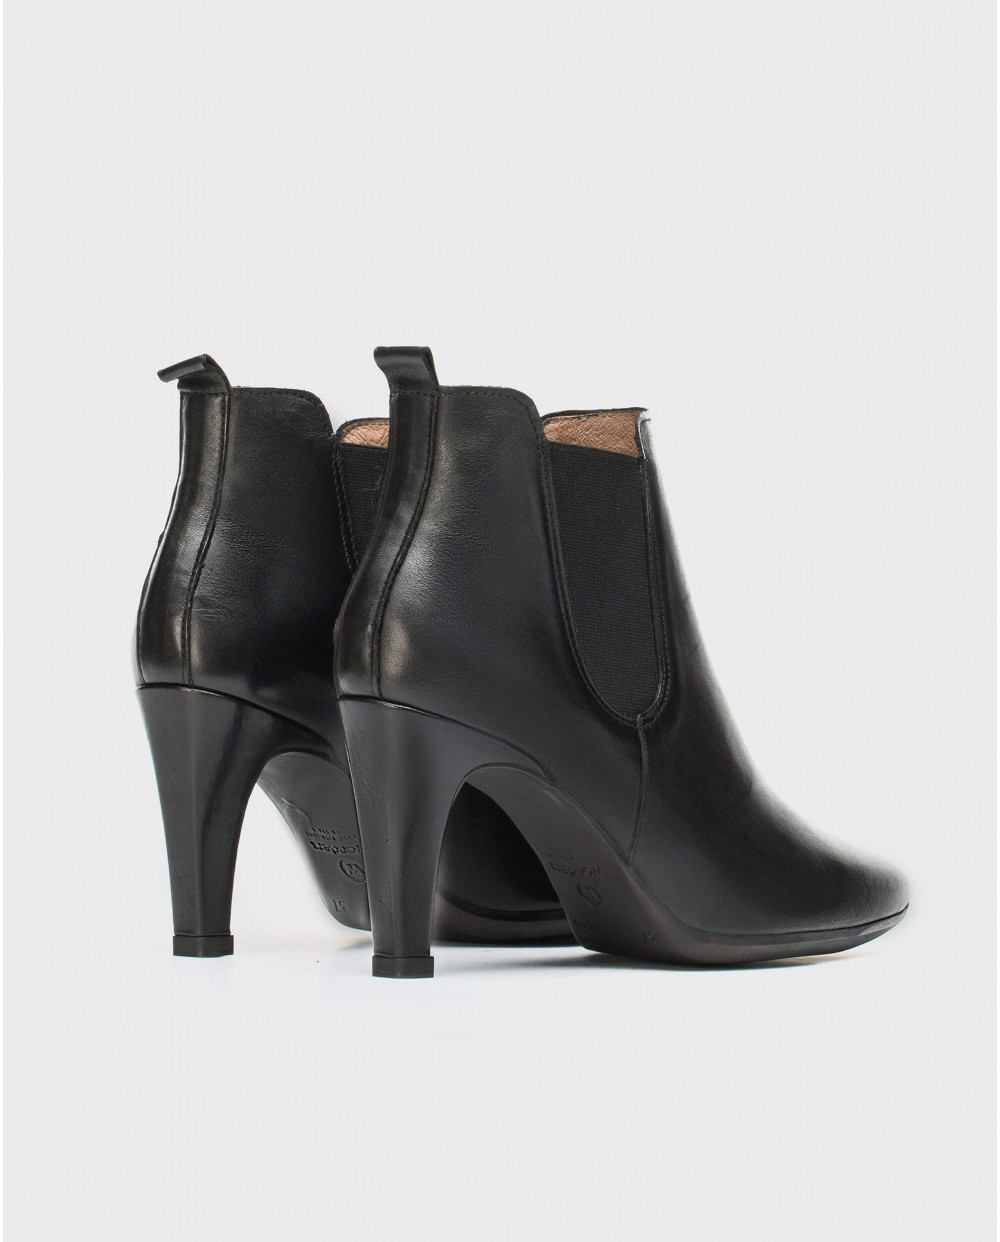 Wonders-Ankle Boots-High heeled ankle boot with elastic